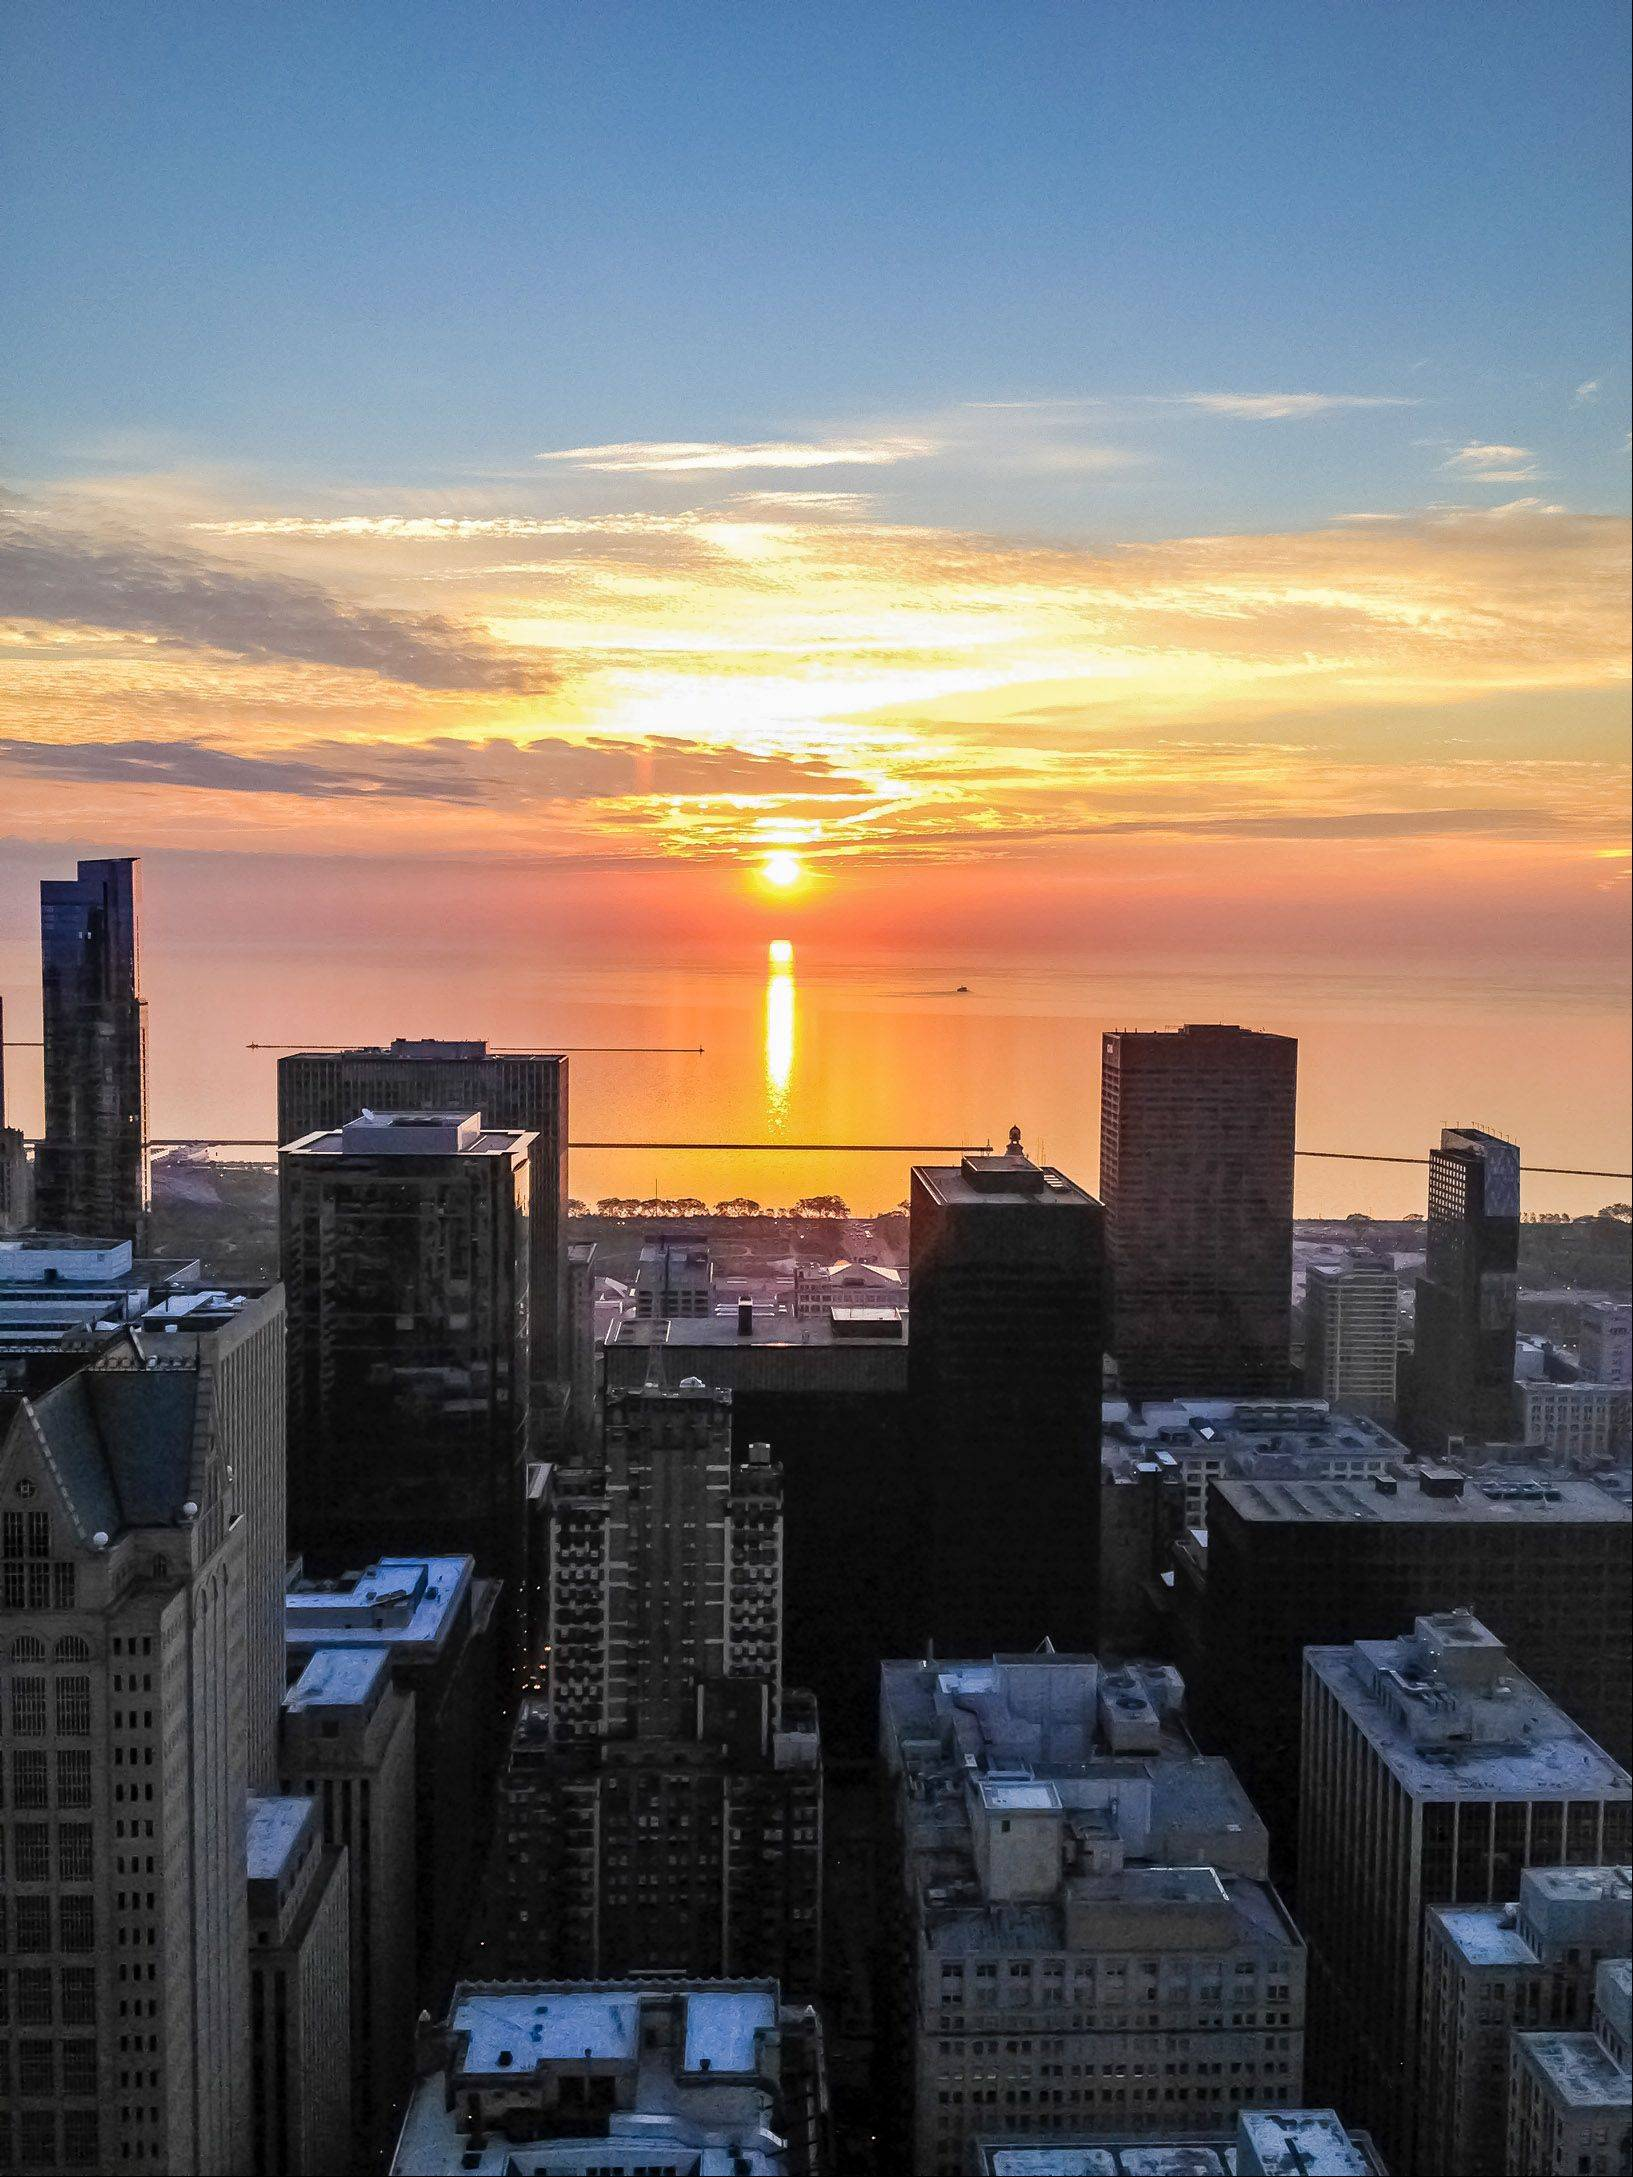 Photo was taken from the Willis Tower on Thursday AM. It shows the sun rising over Lake Michigan.